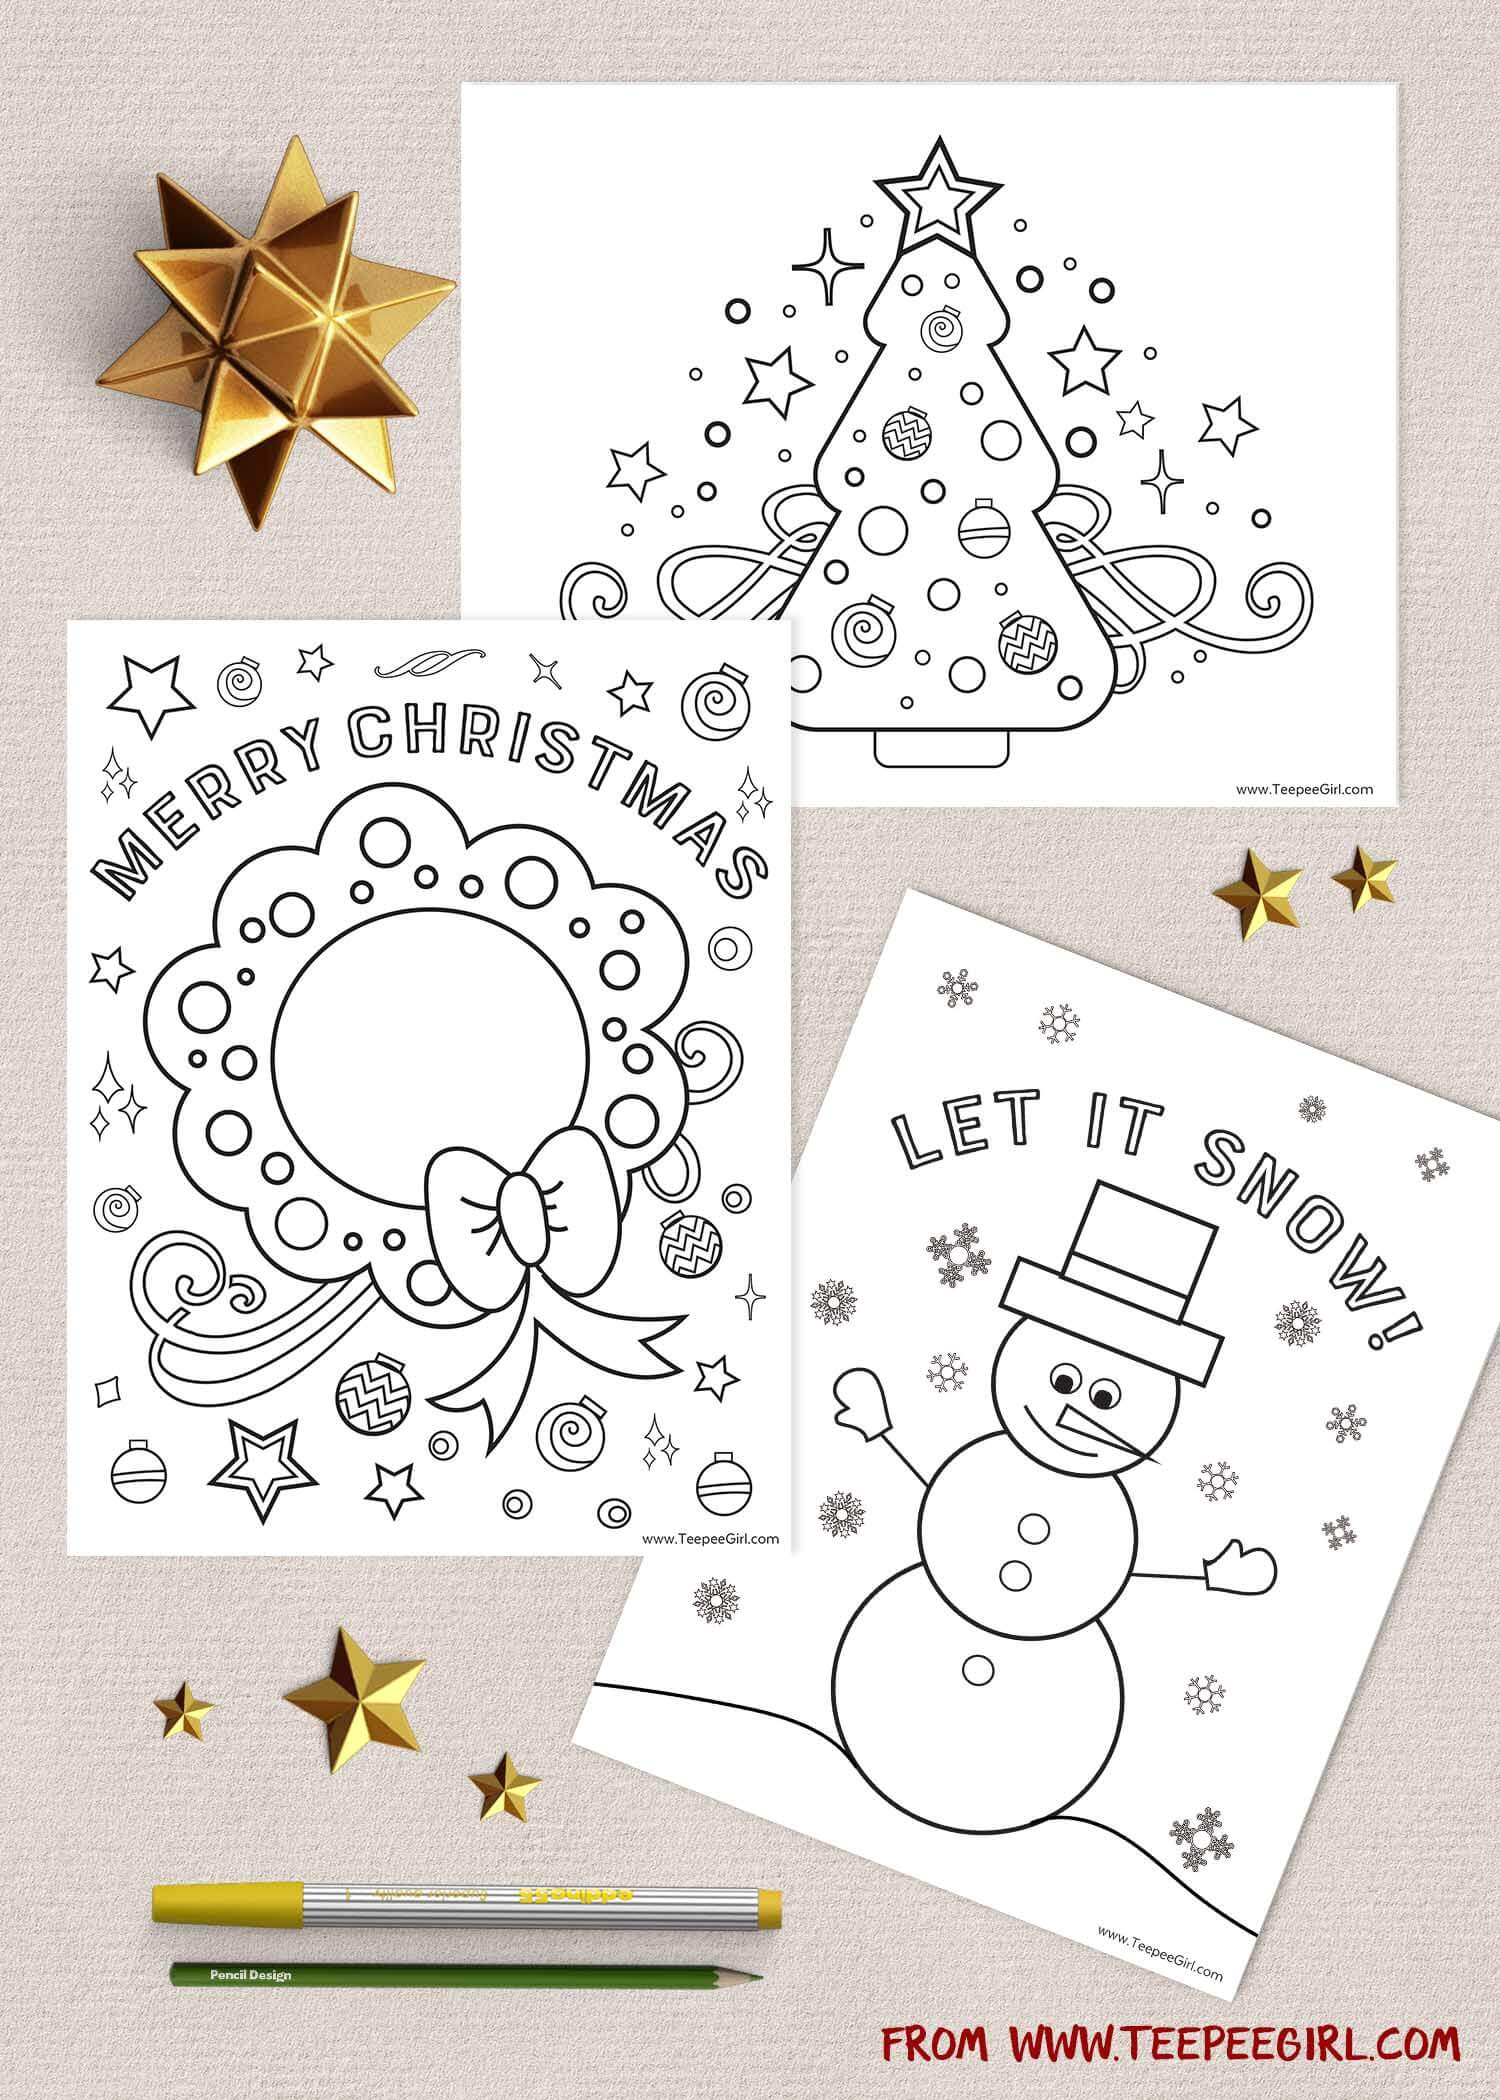 Free Christmas Coloring Pages | www.TeepeeGirl.com